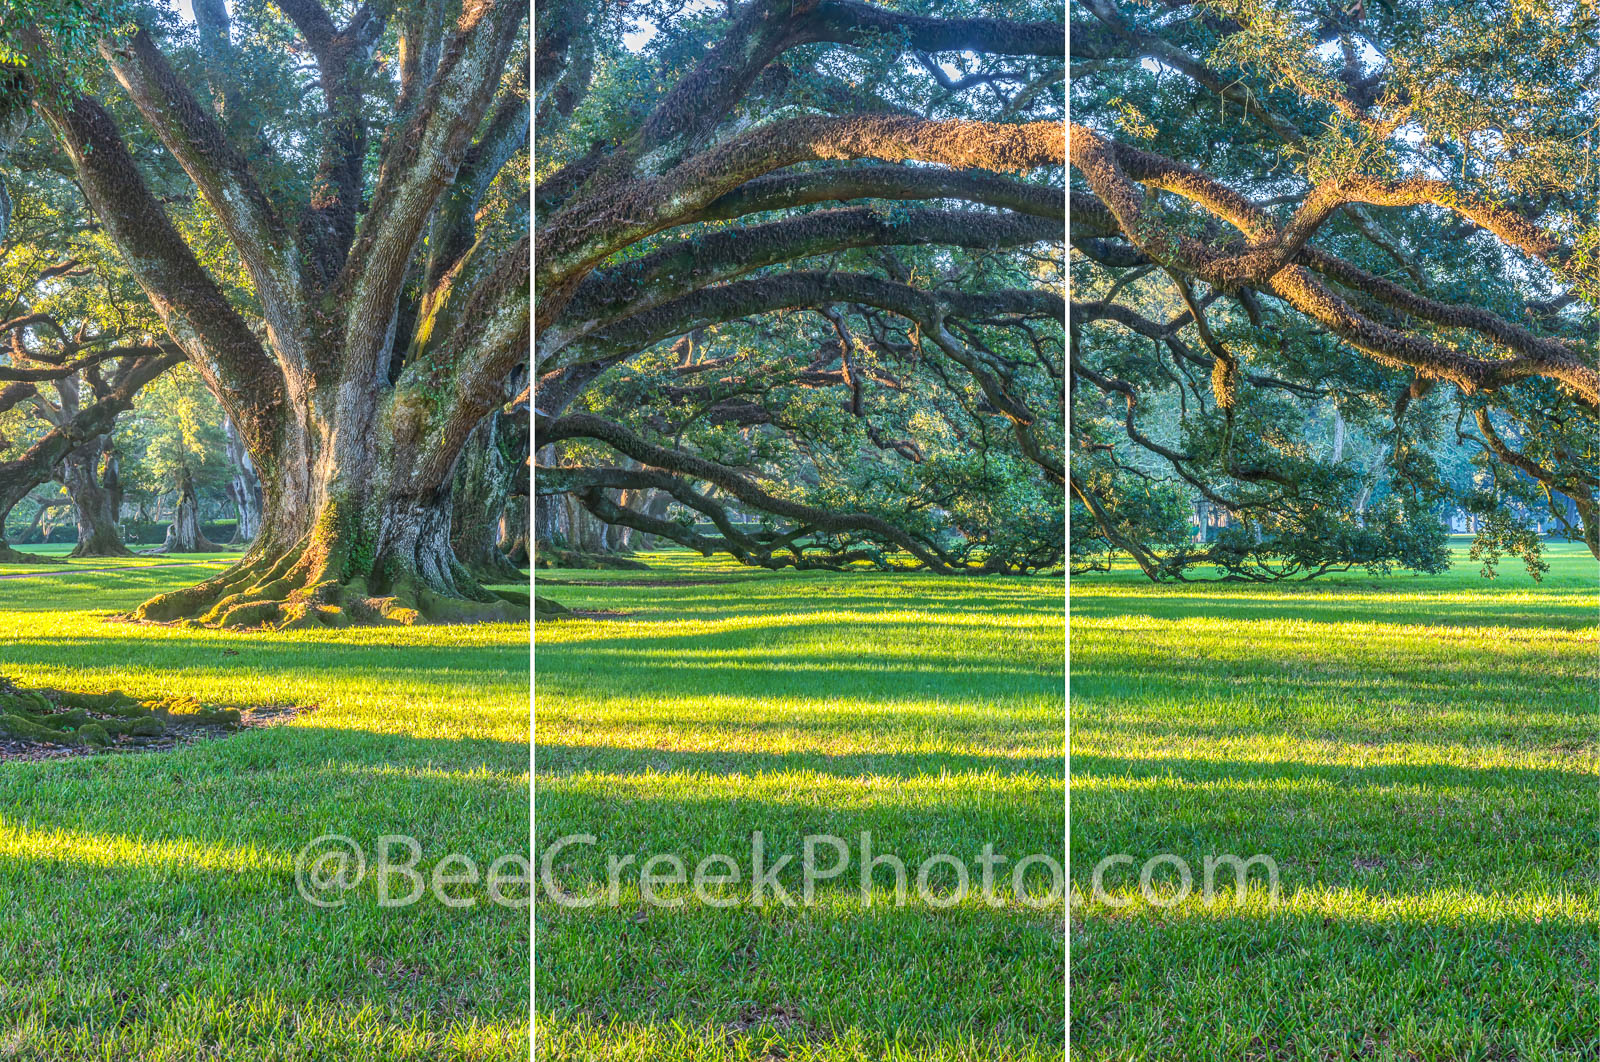 Live Oak, trees, oak trees, plantation, landscape, sunrise, trptych, three panel split image, slavery, seven oaks, landscape, plantation, mansion, river road, bowing oaks, oak valley, famous, sugar ca, photo